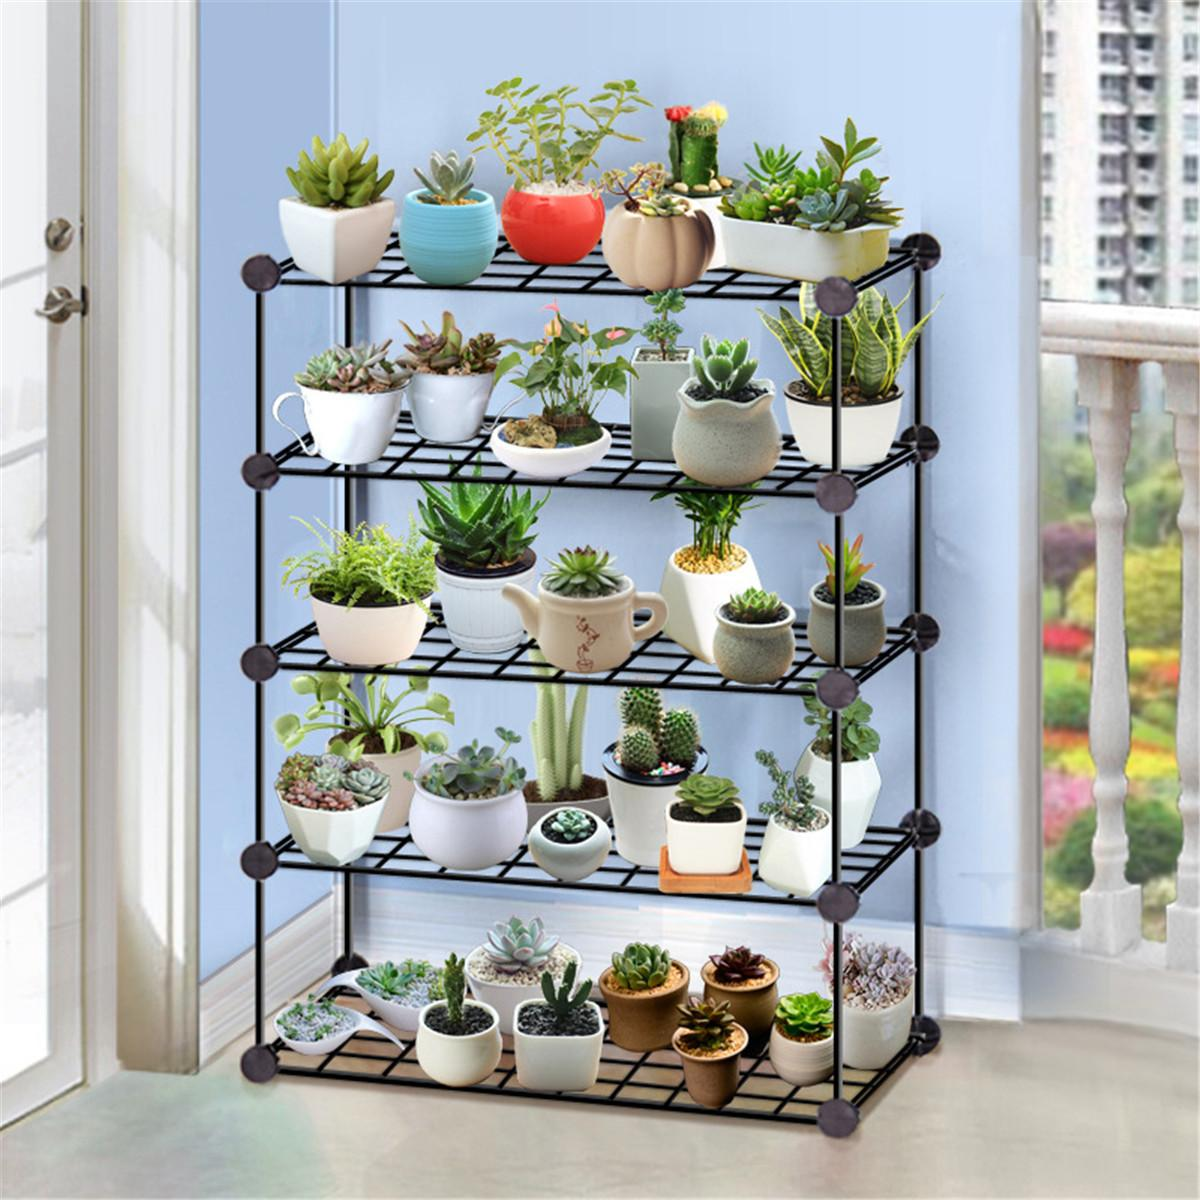 Multi-layer Plant Stand Succulent Shelf Household Wrought Iron  Rack Balcony Simple Indoor Coffee Bar Garden Flower Pot ShelfMulti-layer Plant Stand Succulent Shelf Household Wrought Iron  Rack Balcony Simple Indoor Coffee Bar Garden Flower Pot Shelf